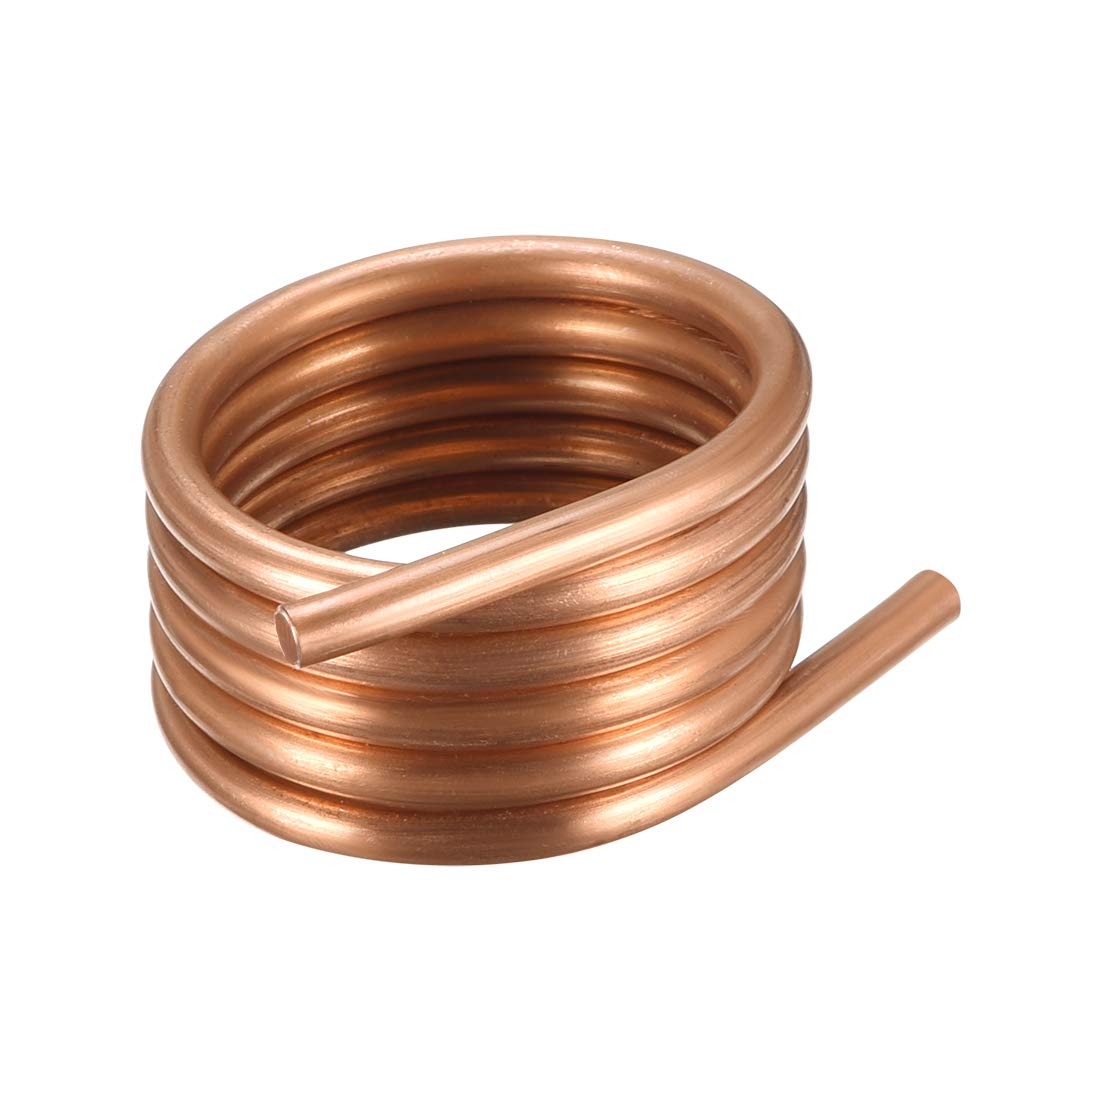 uxcell RC Boat Brush Motor Water Cooling Jacket Copper Water Cooling Ring for 540 550 Brush Motor Parts